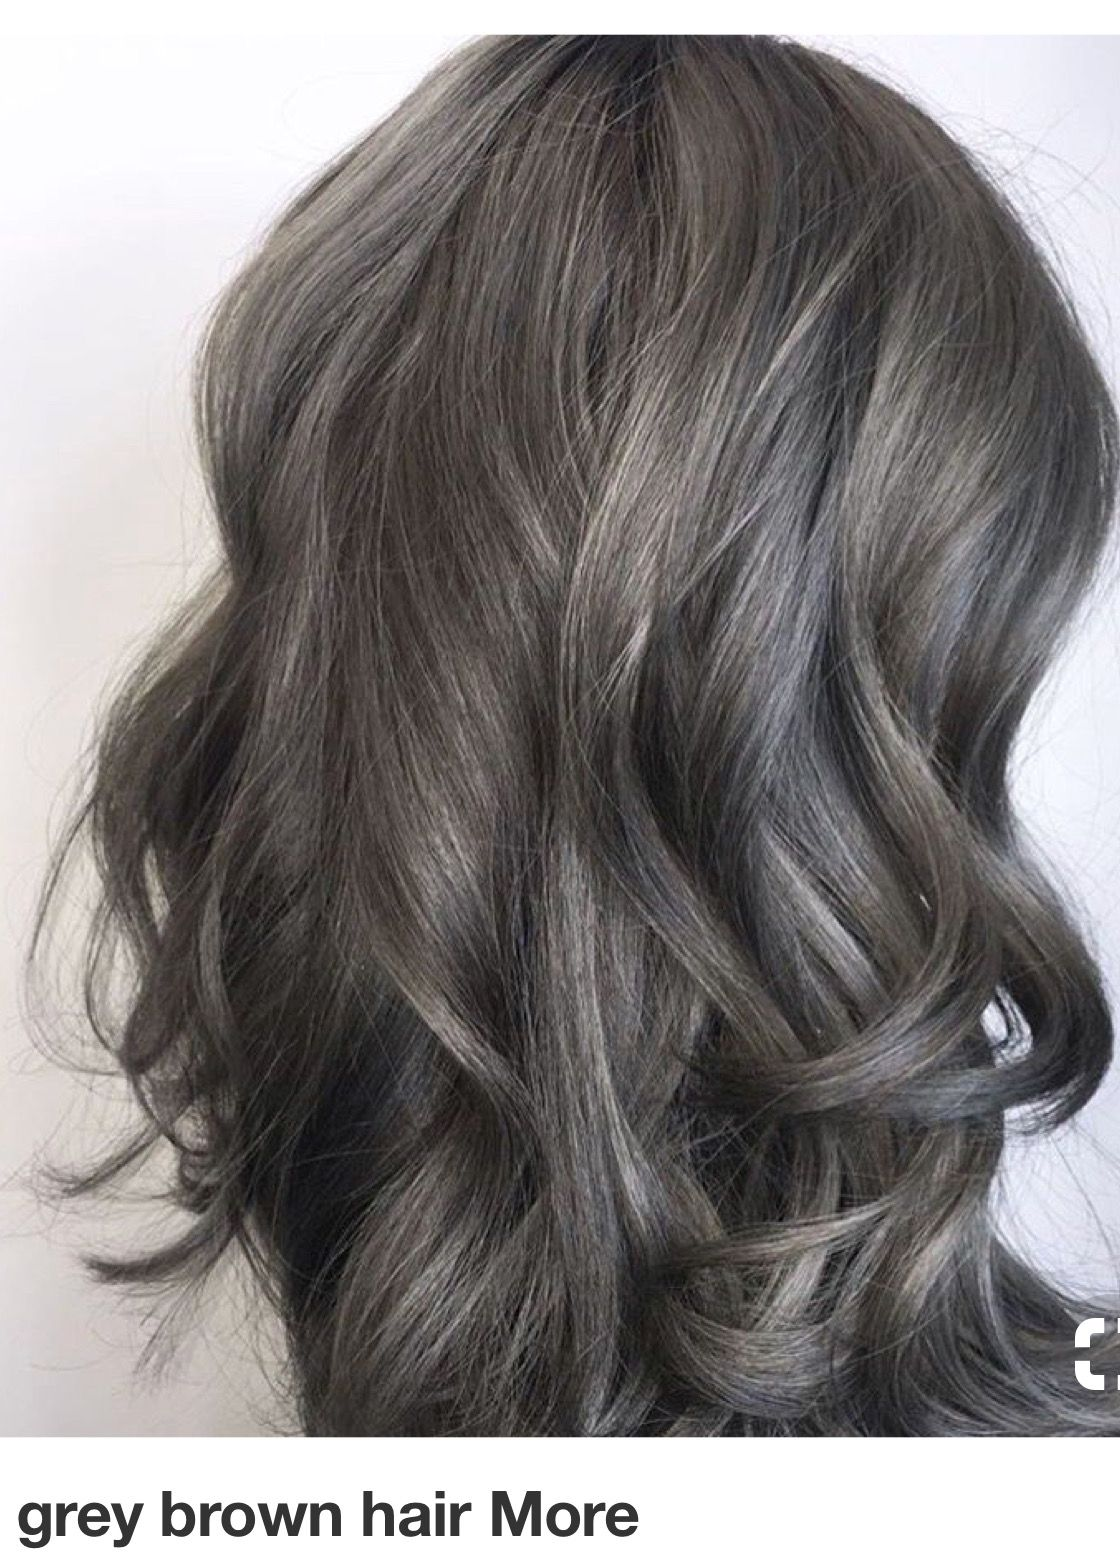 Pin By Diana Packer On Hair Gray Hair Highlights Hair Styles Ash Brown Hair Color